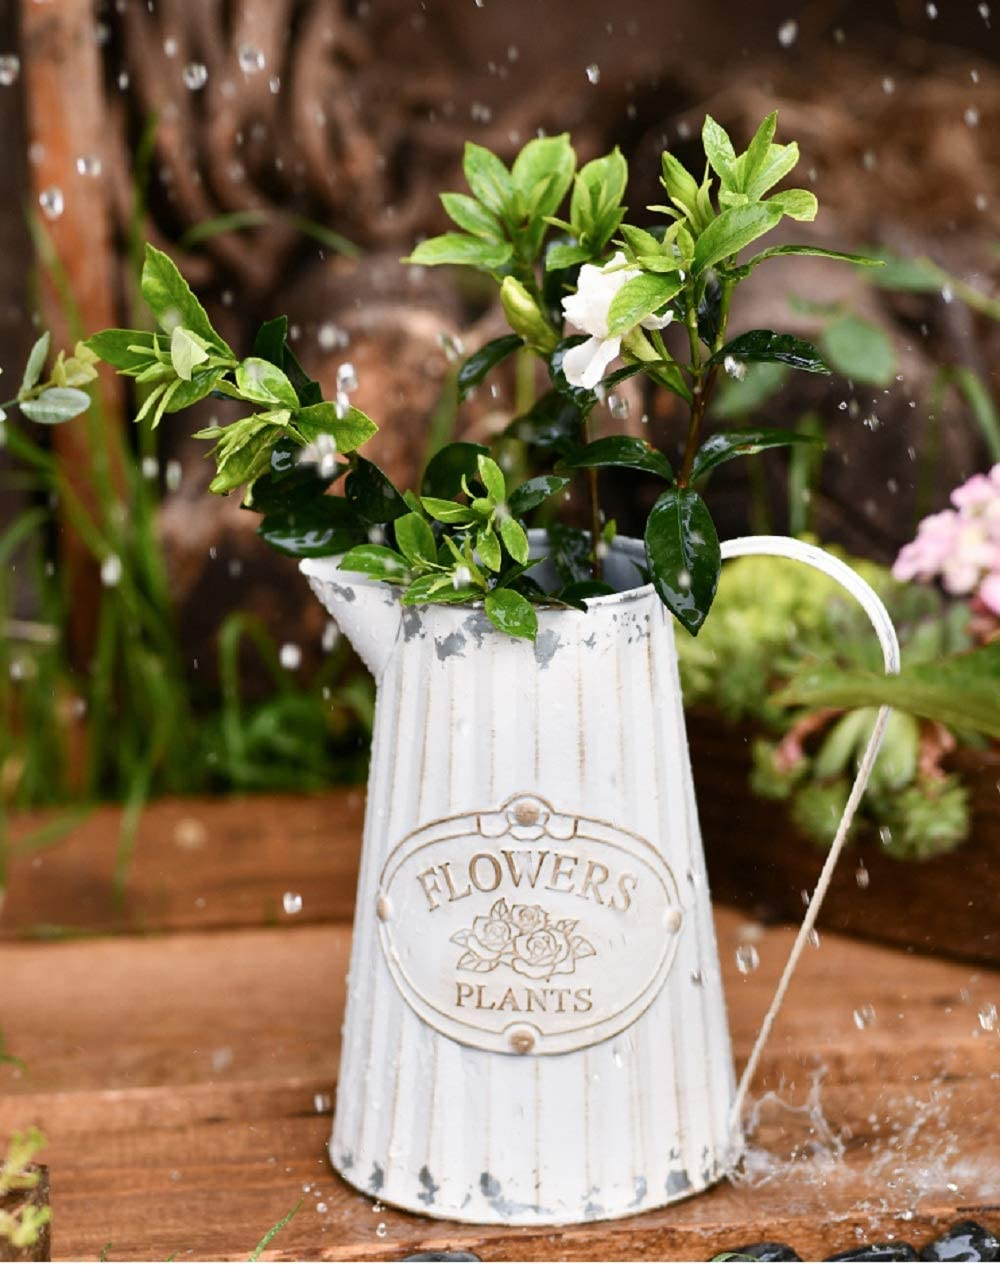 Soyizom Decorative Flower Vase Rustic Shabby Chic Metal Jug French Rustic White Pitcher Country Vintage Milk Can Galvanized Tin Watering Jug Farmhouse Decor Vase for Wedding Dinner Table Centerpiece